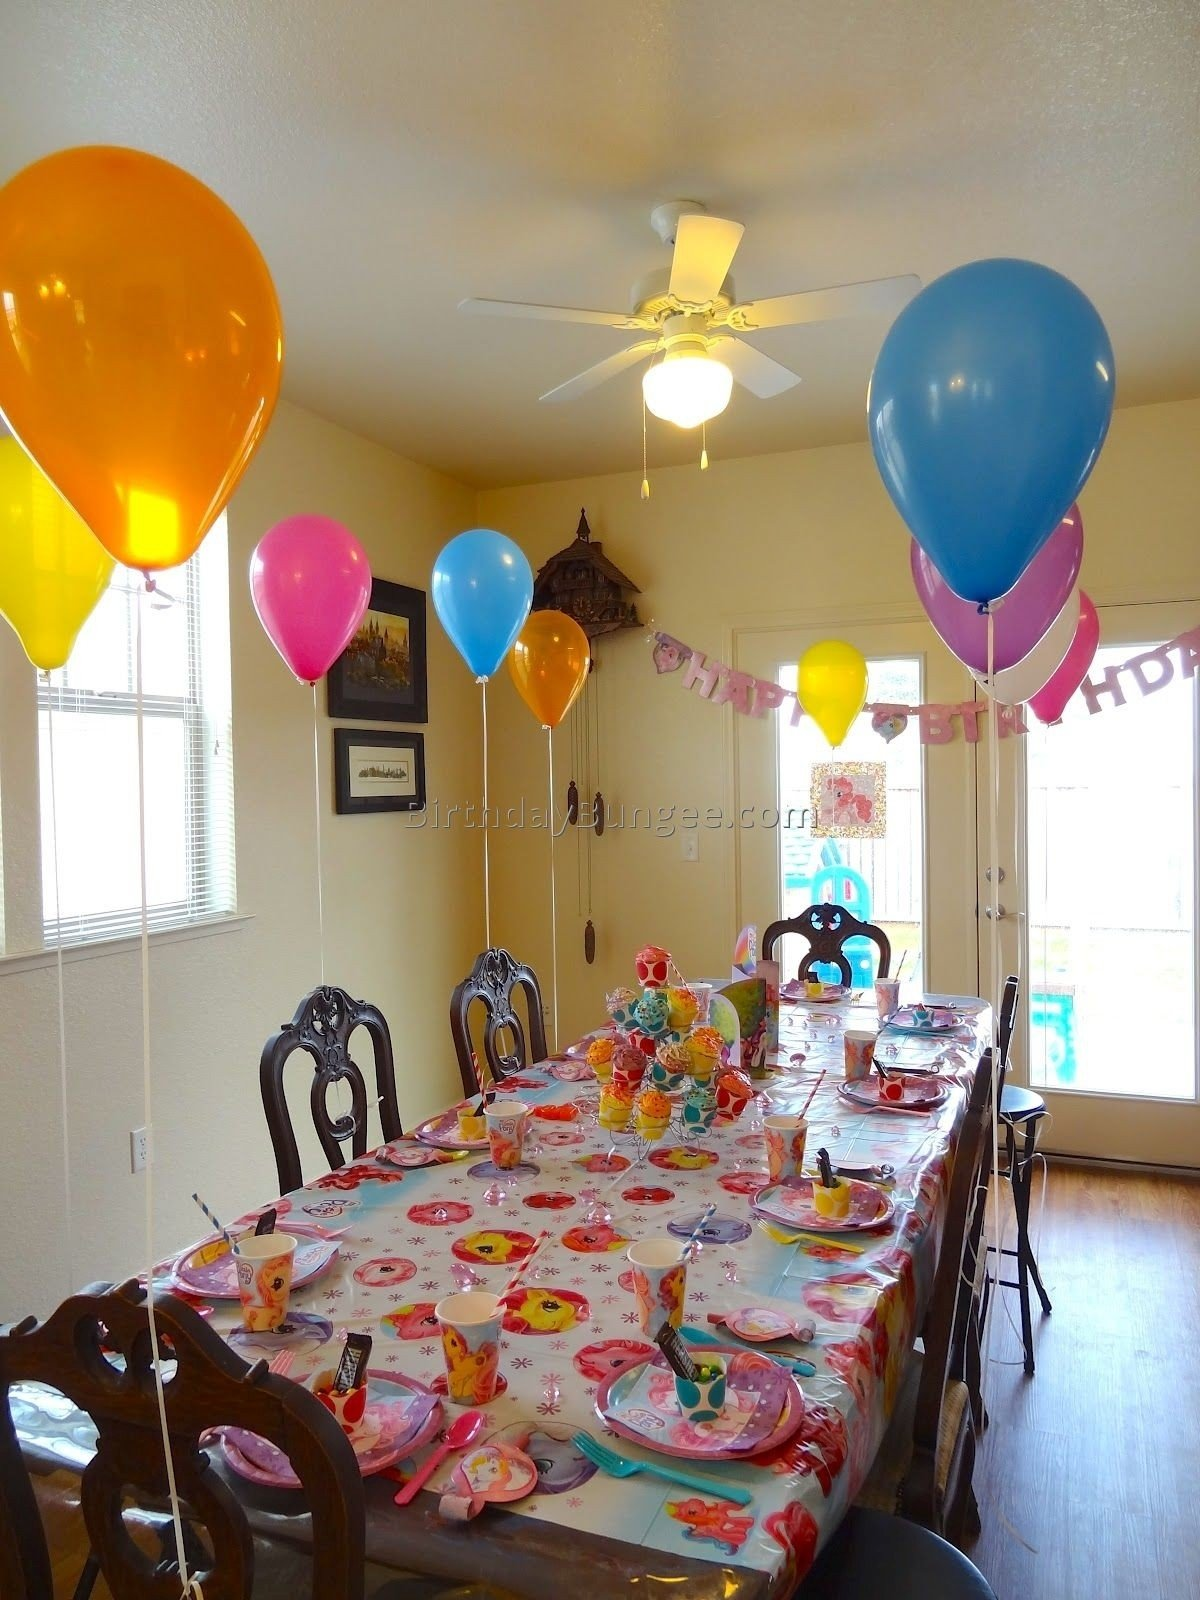 10 Stylish 4 Year Old Little Girl Birthday Party Ideas 20 terrific decor regarding 4 year old little girl birthday party 2020